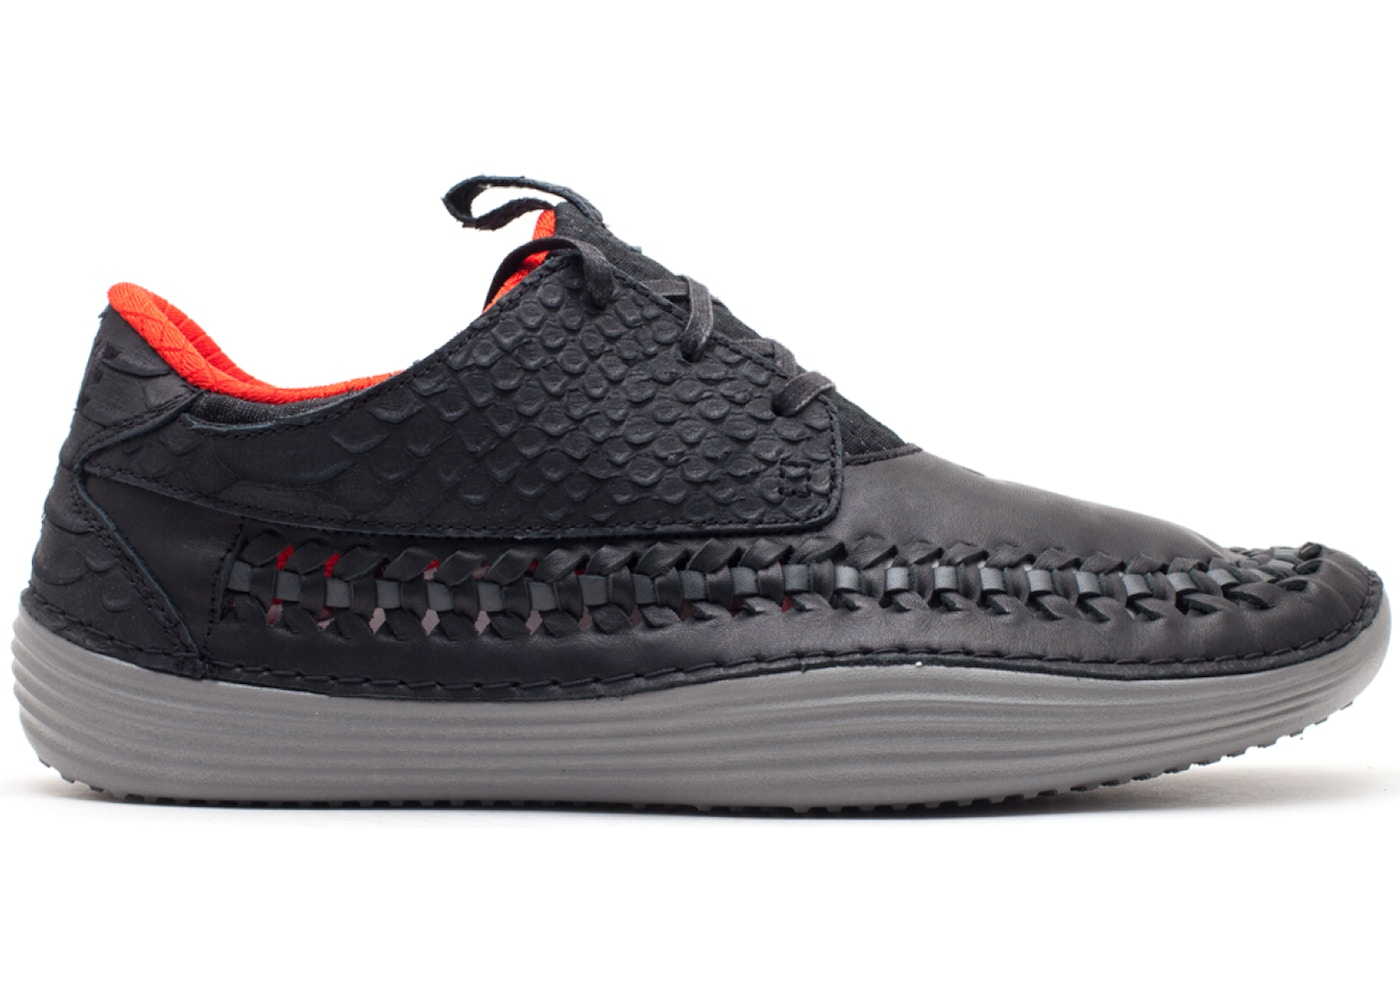 739ef3c1 Sell. or Ask. Size: 10. View All Bids. Nike Solarsoft Moccasin Woven Yeezy